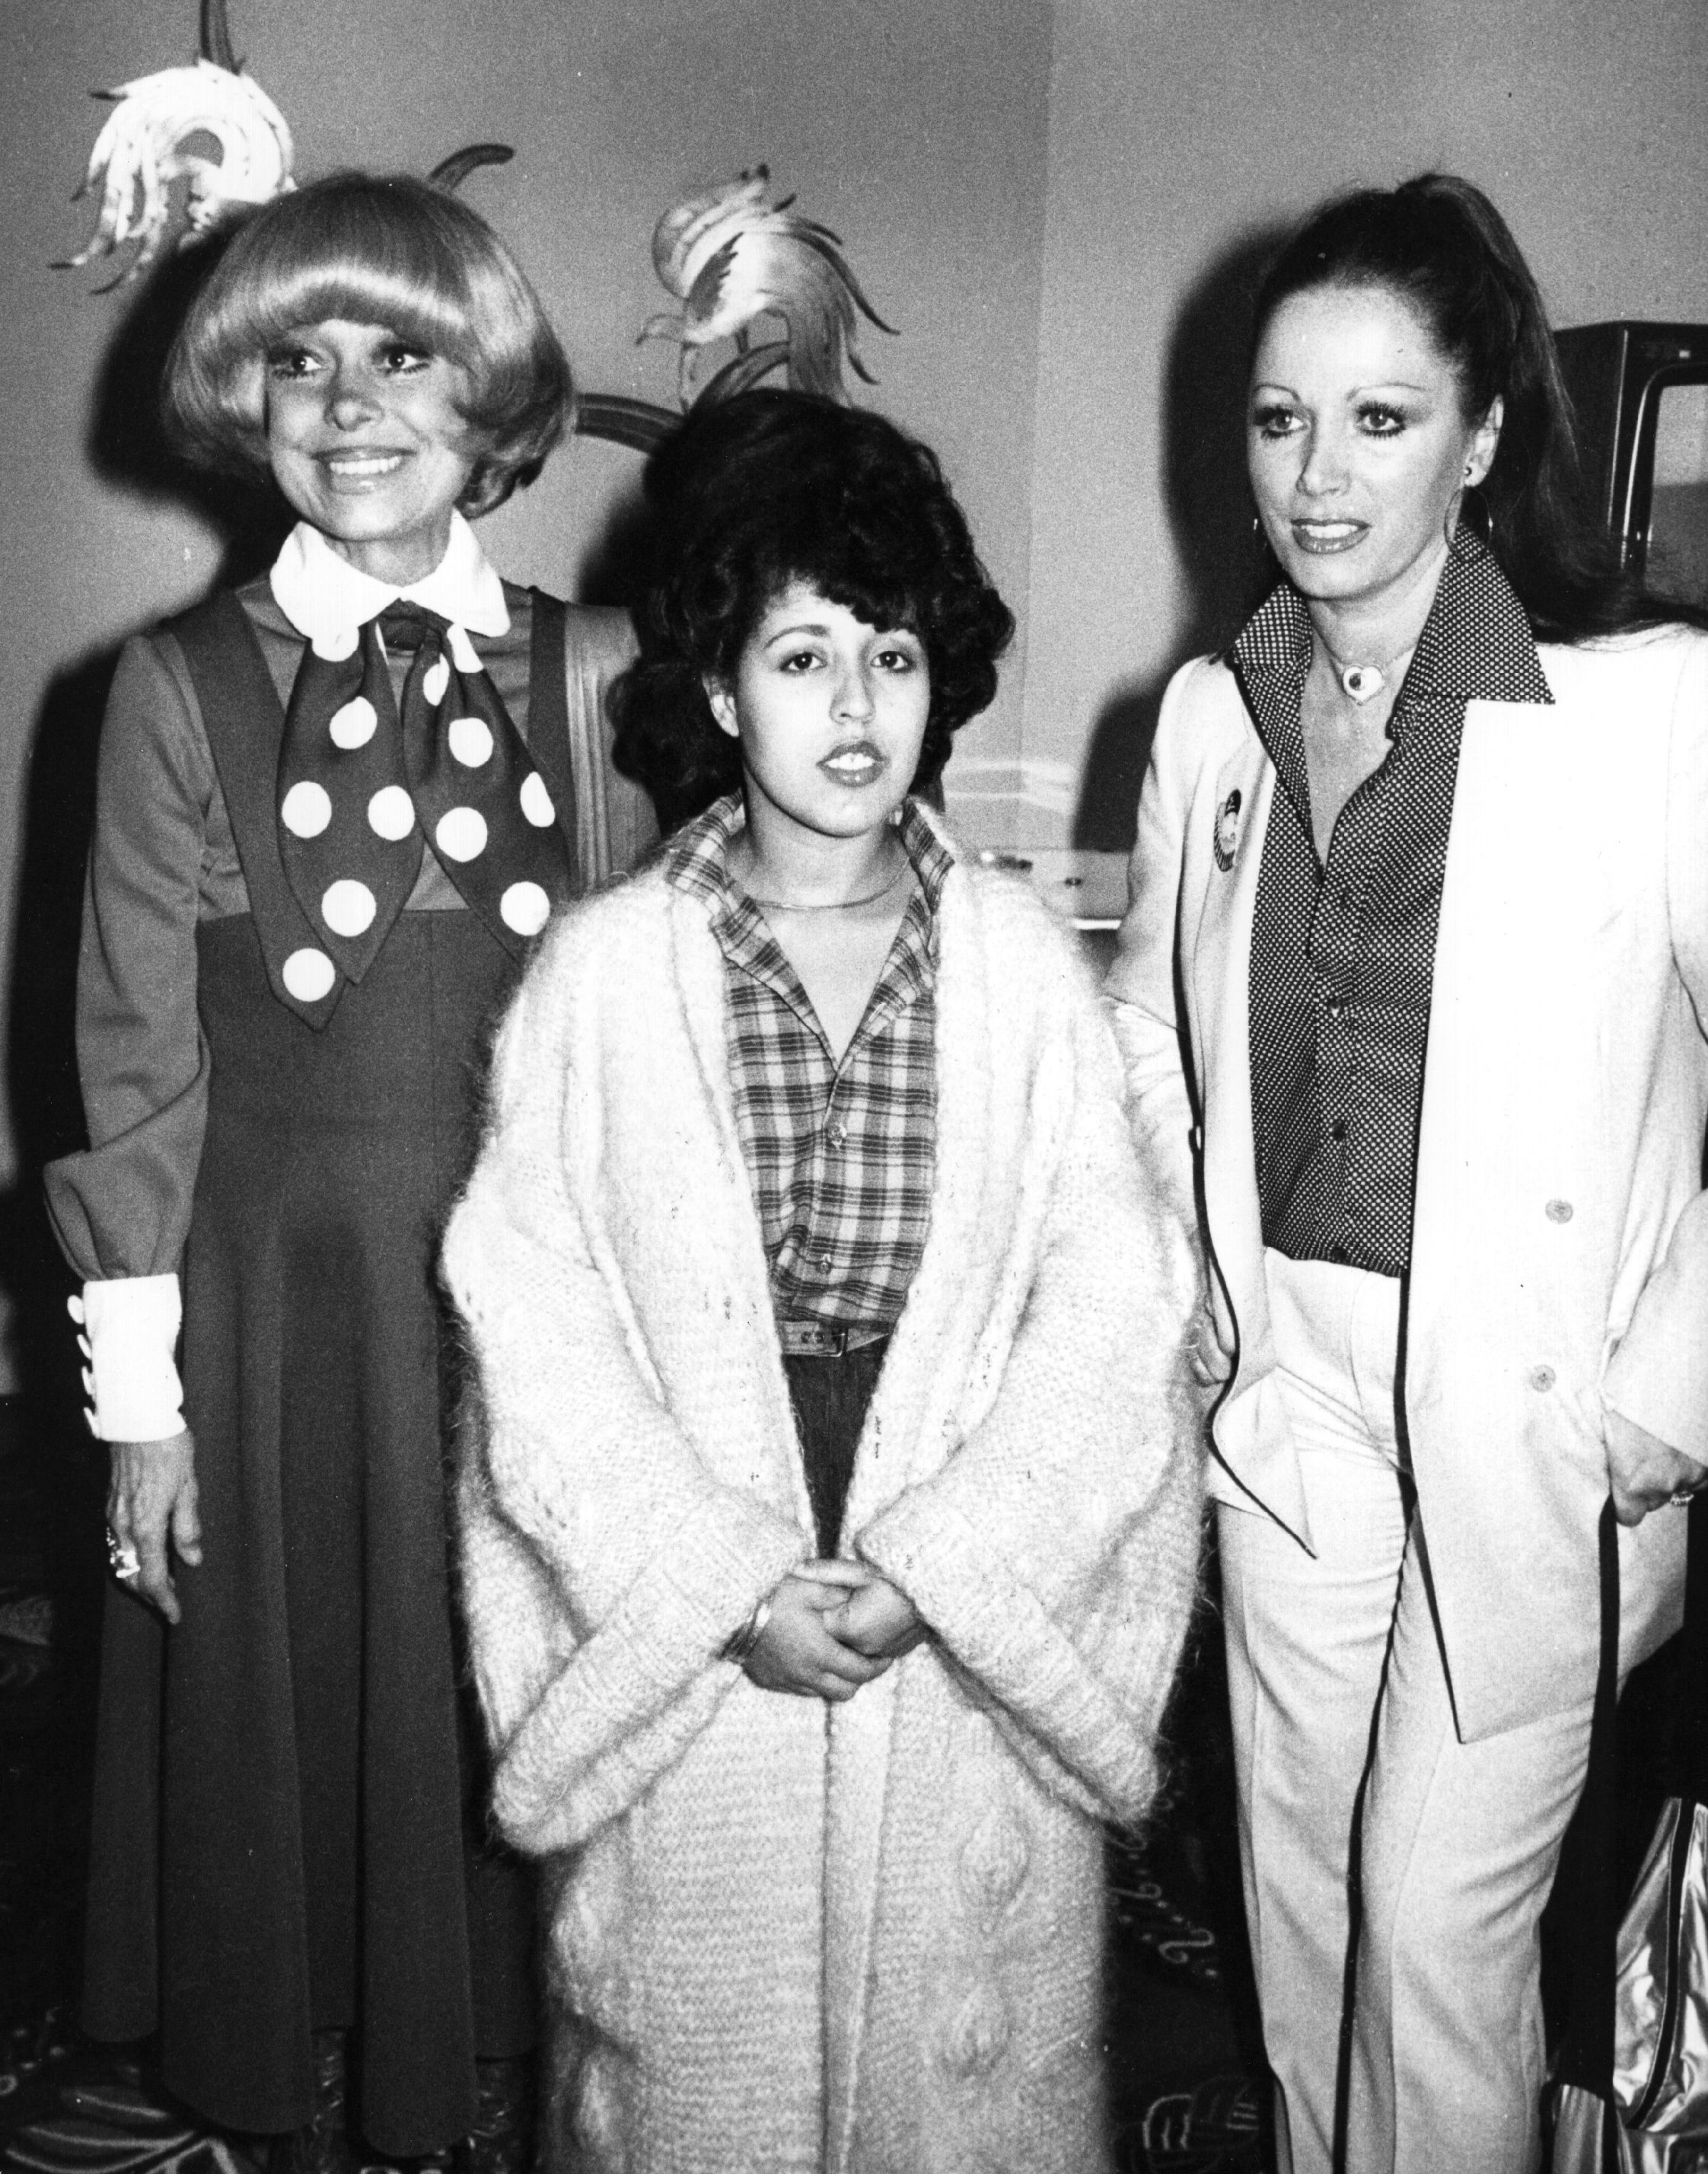 29th October 1979:  Carol Channing, actress and star of the musical 'Hello Dolly', Polly Styrene, singer and songwriter formerly of punk band X Ray Spex, and novelist Jackie Collins, from left to right, at the Savoy Hotel for the 'Women Of The Year' luncheon. The event was held in aid of the Greater London Fund For The Blind charity.  (Photo by Wesley/Keystone/Getty Images)